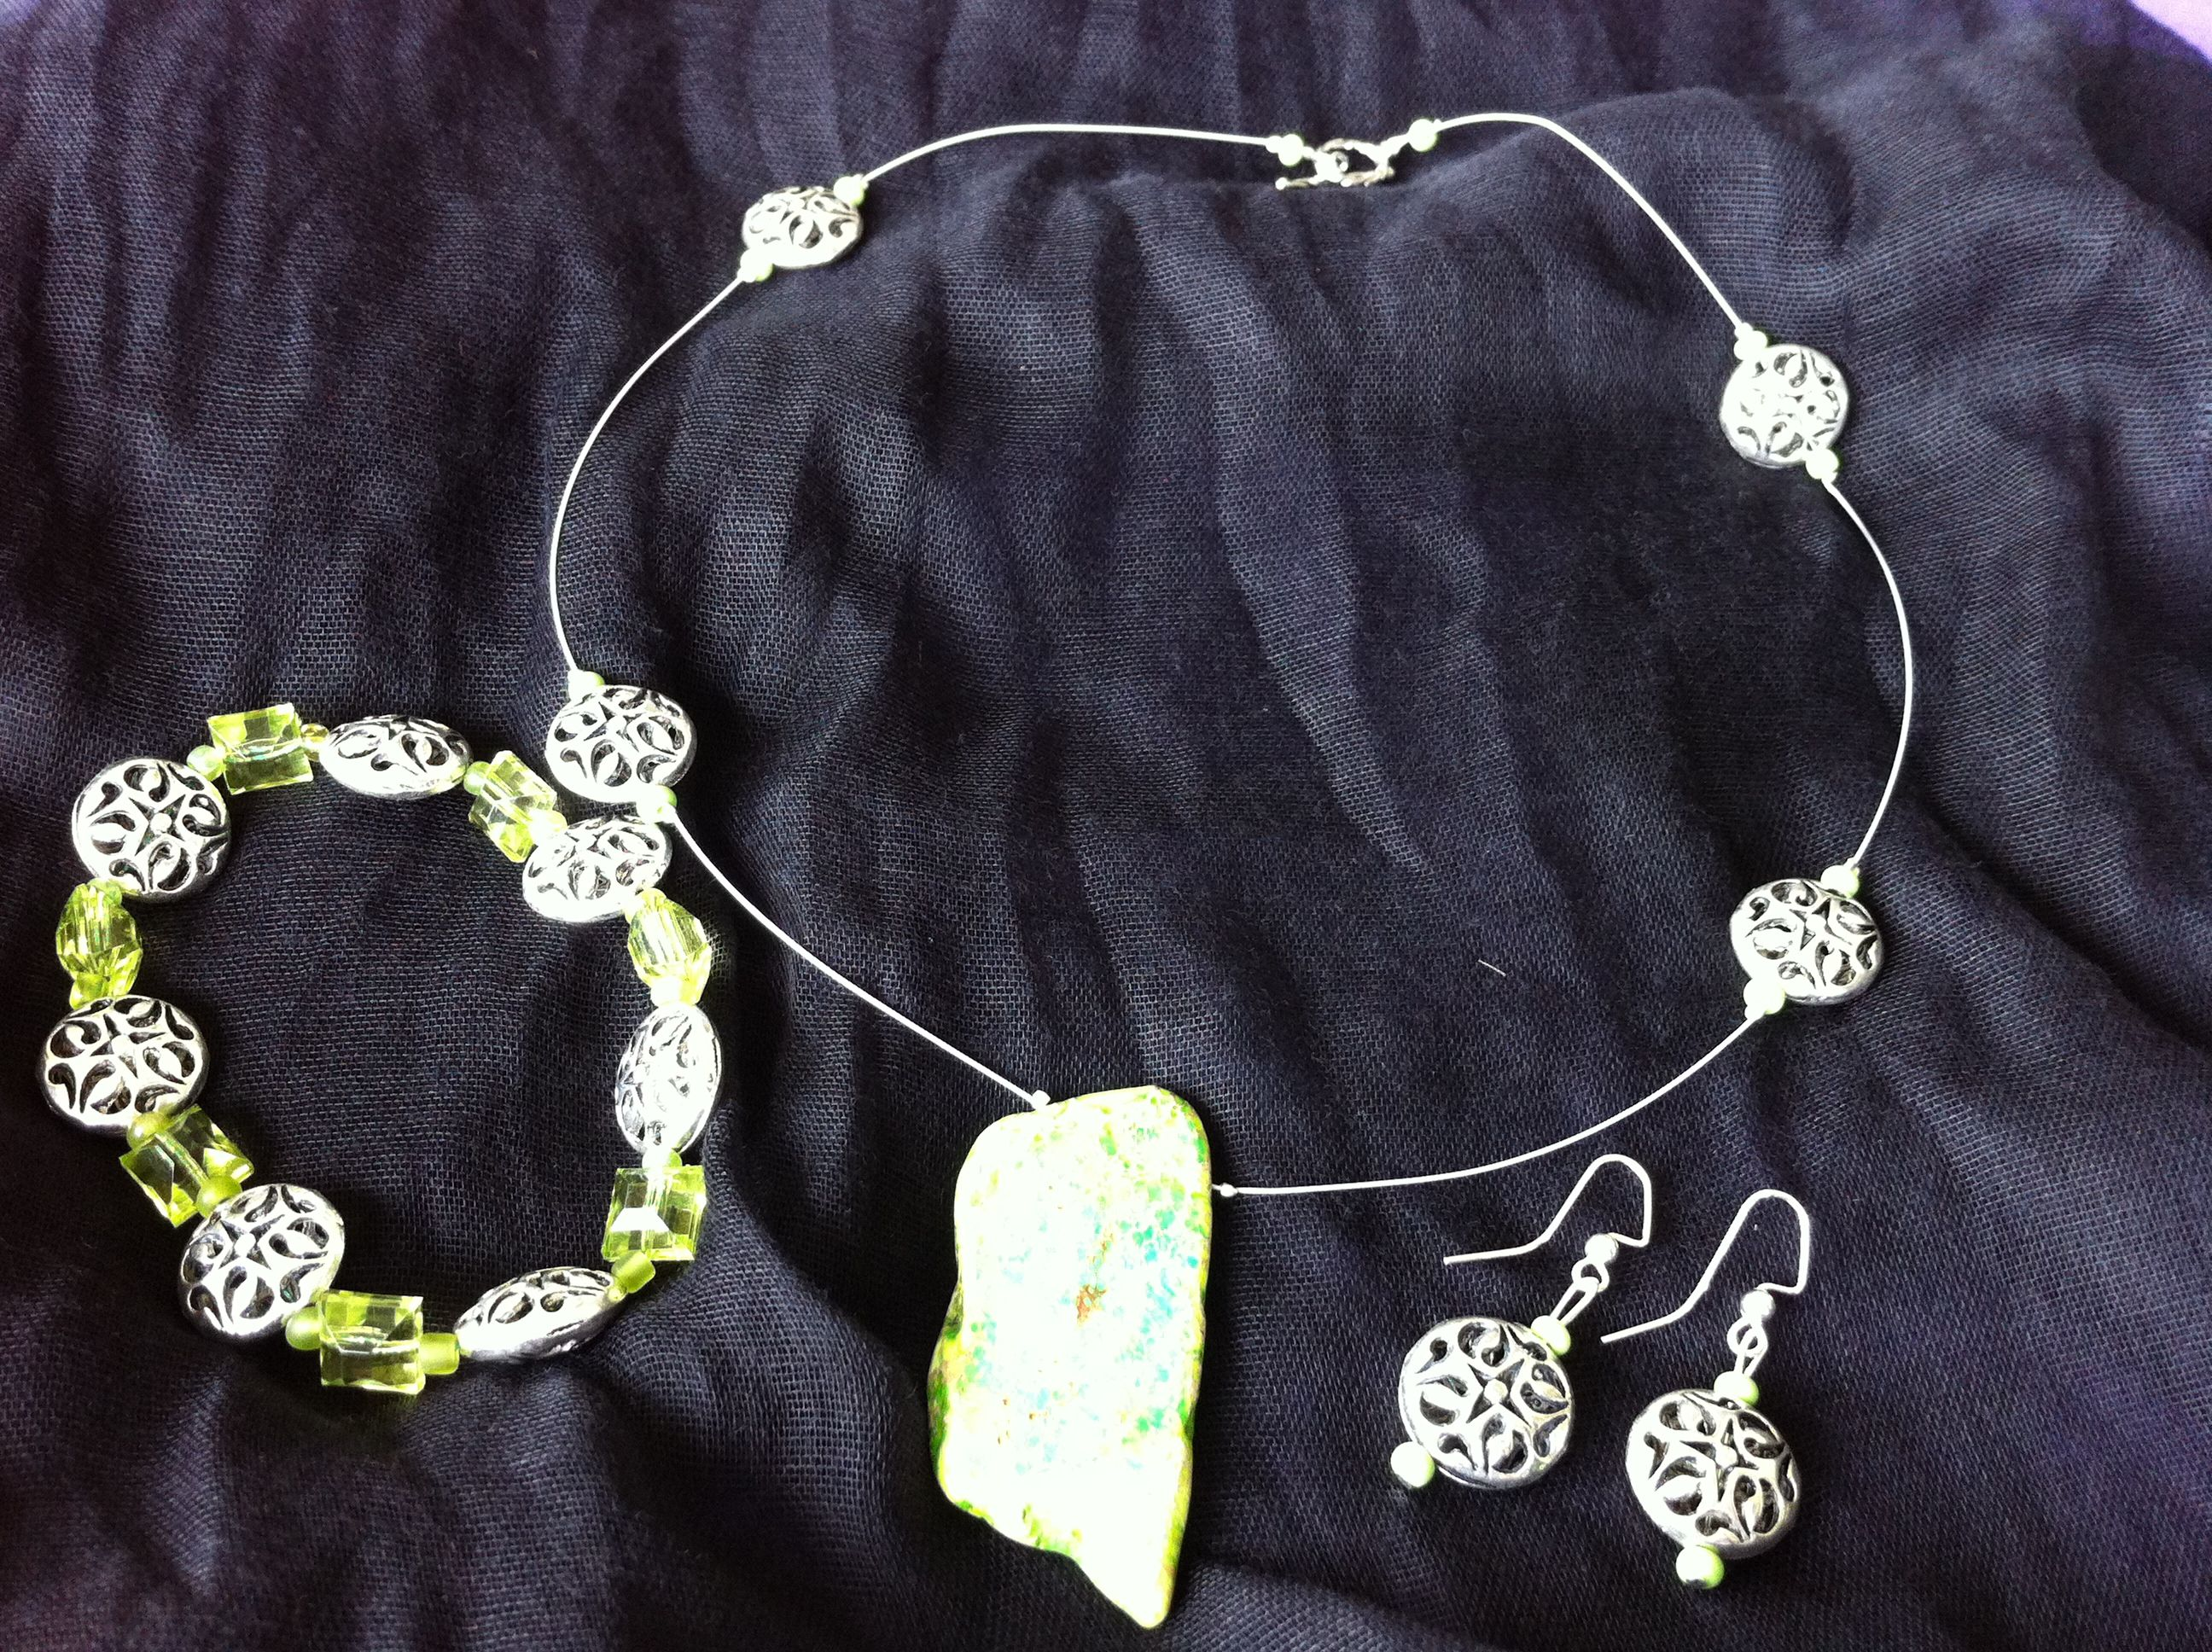 3 pc set includes necklace with green stone and antiqued silver beads, bracelet has antiqued silver beads and green beads, and earrings have antiqued silver and green seed beads with silver earwigs